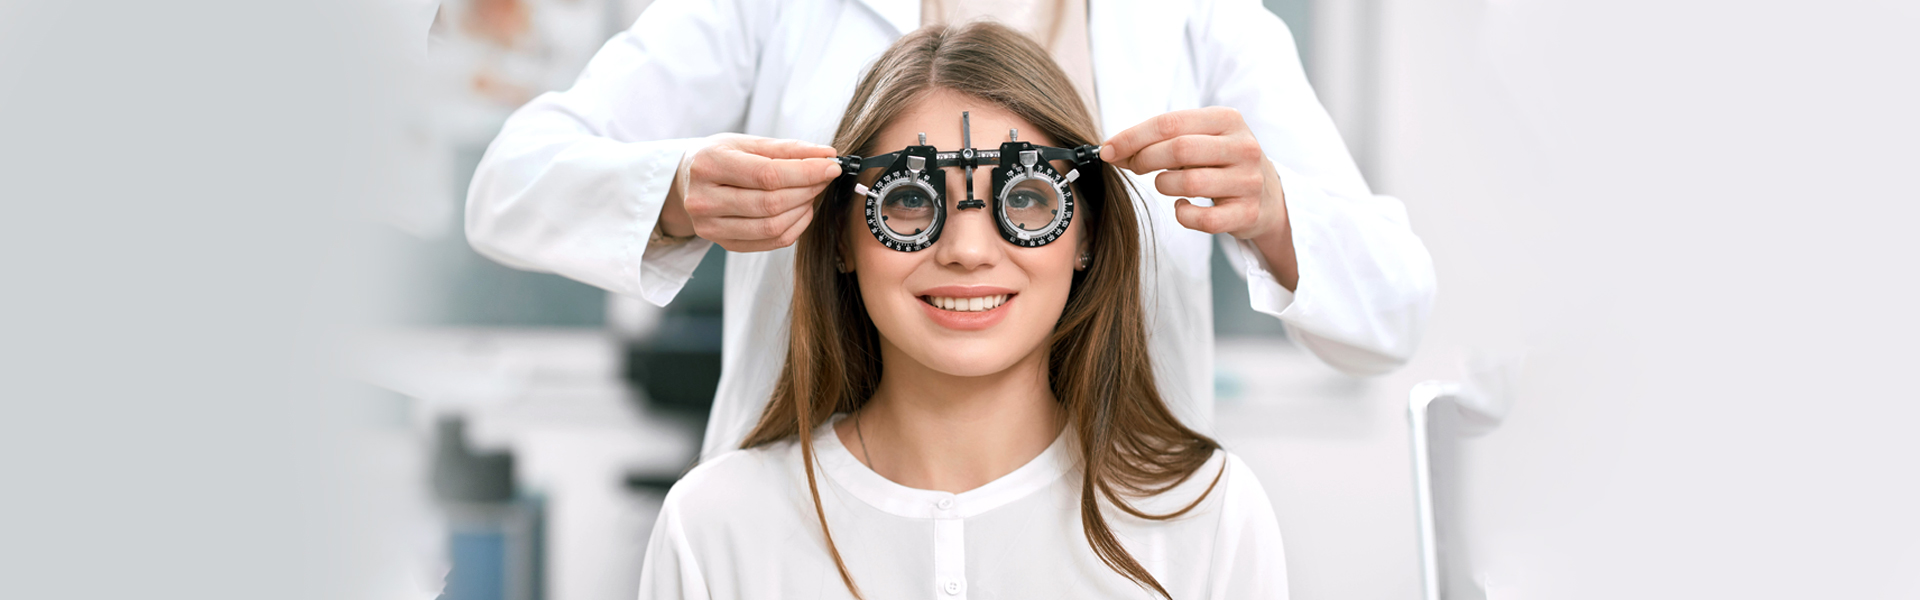 Vision Therapy in Calgary, AB: Things to Know